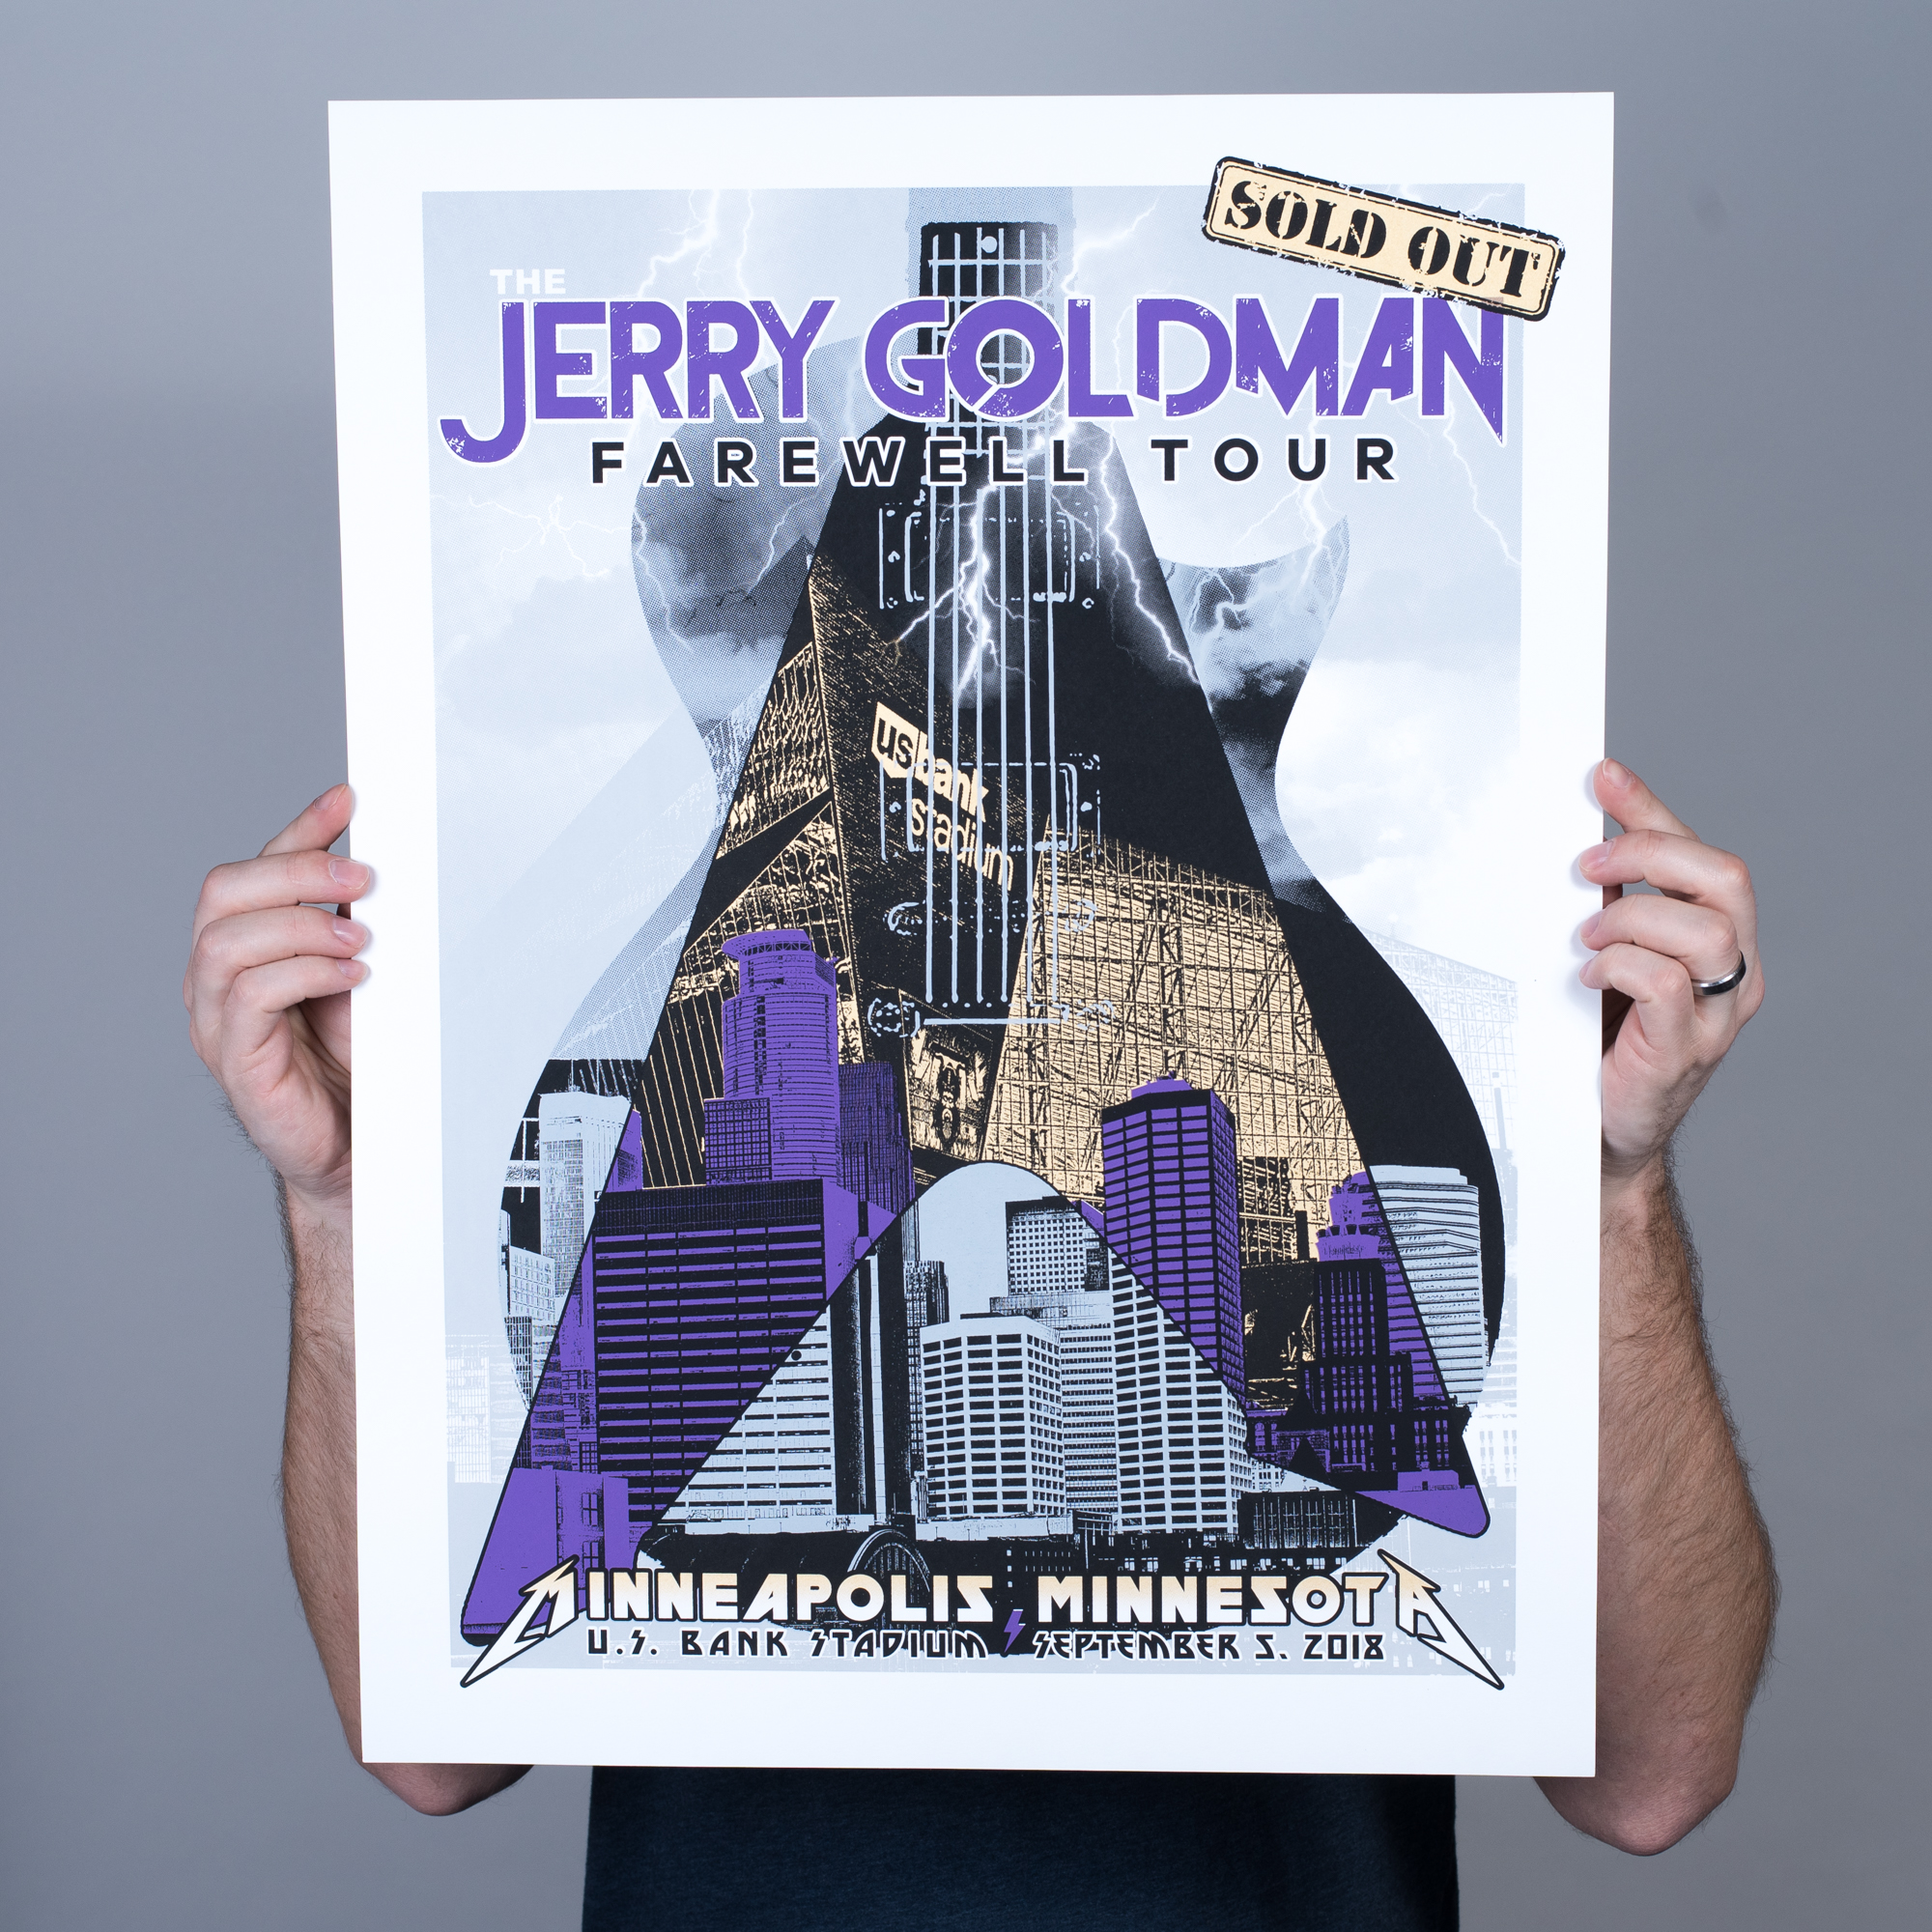 Jerry Goldman